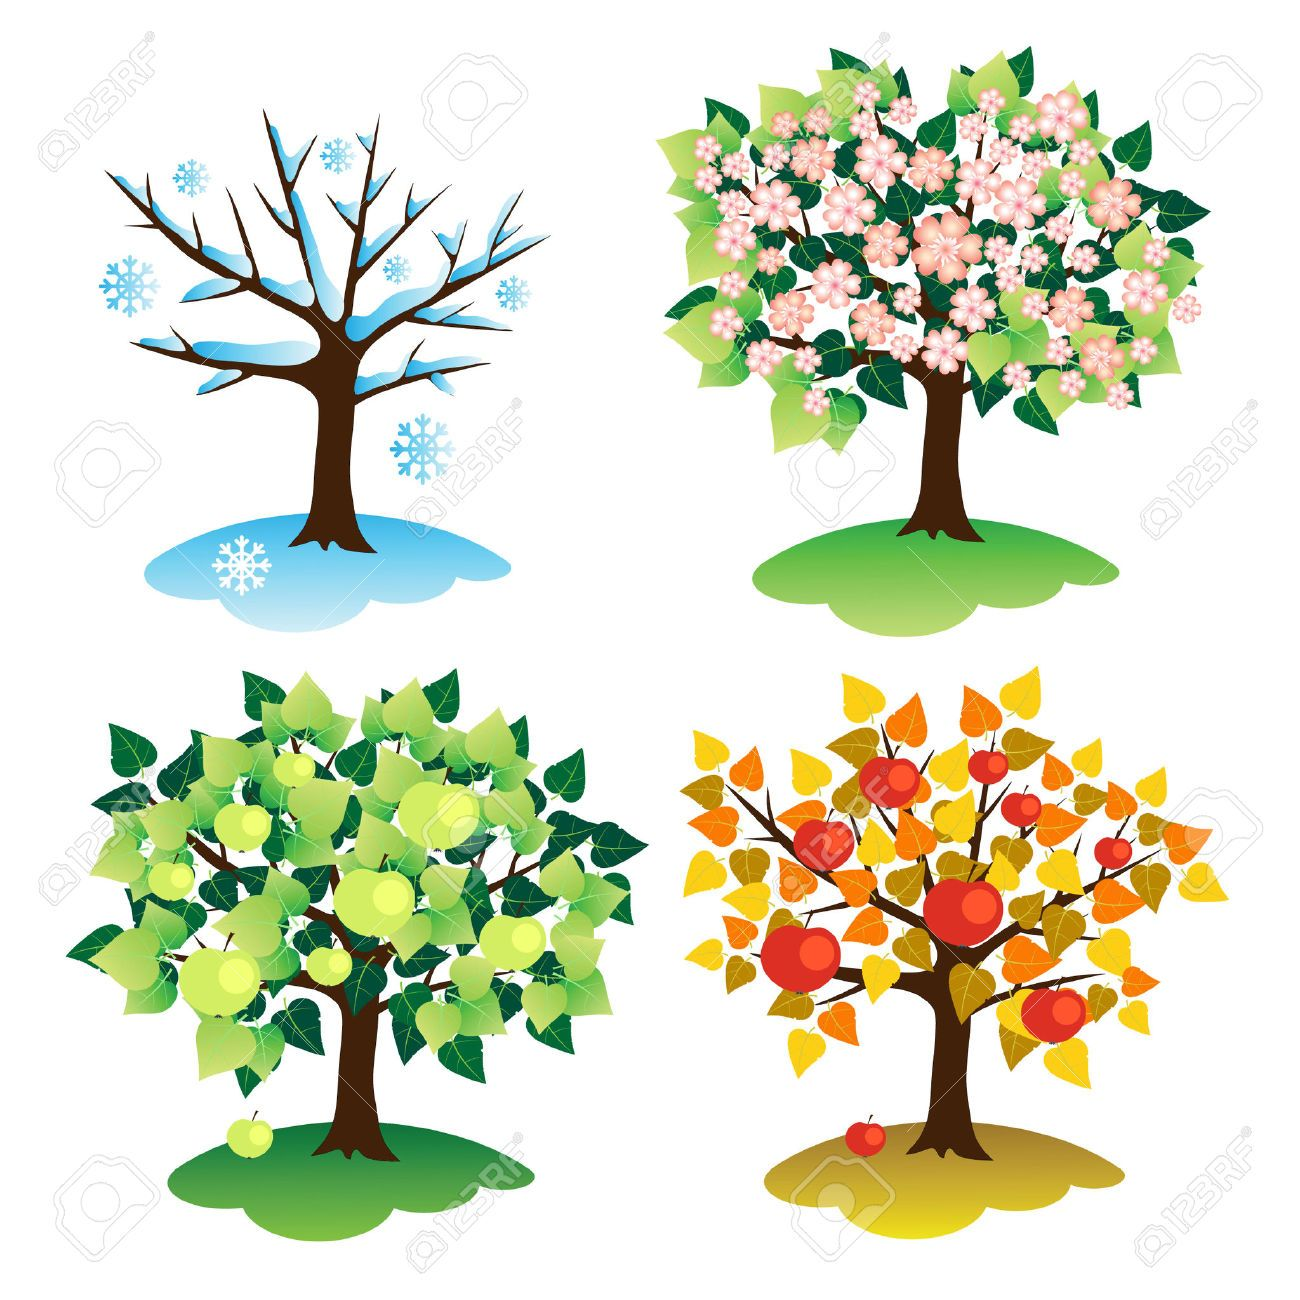 4 seasons clipart 1 » Clipart Station.